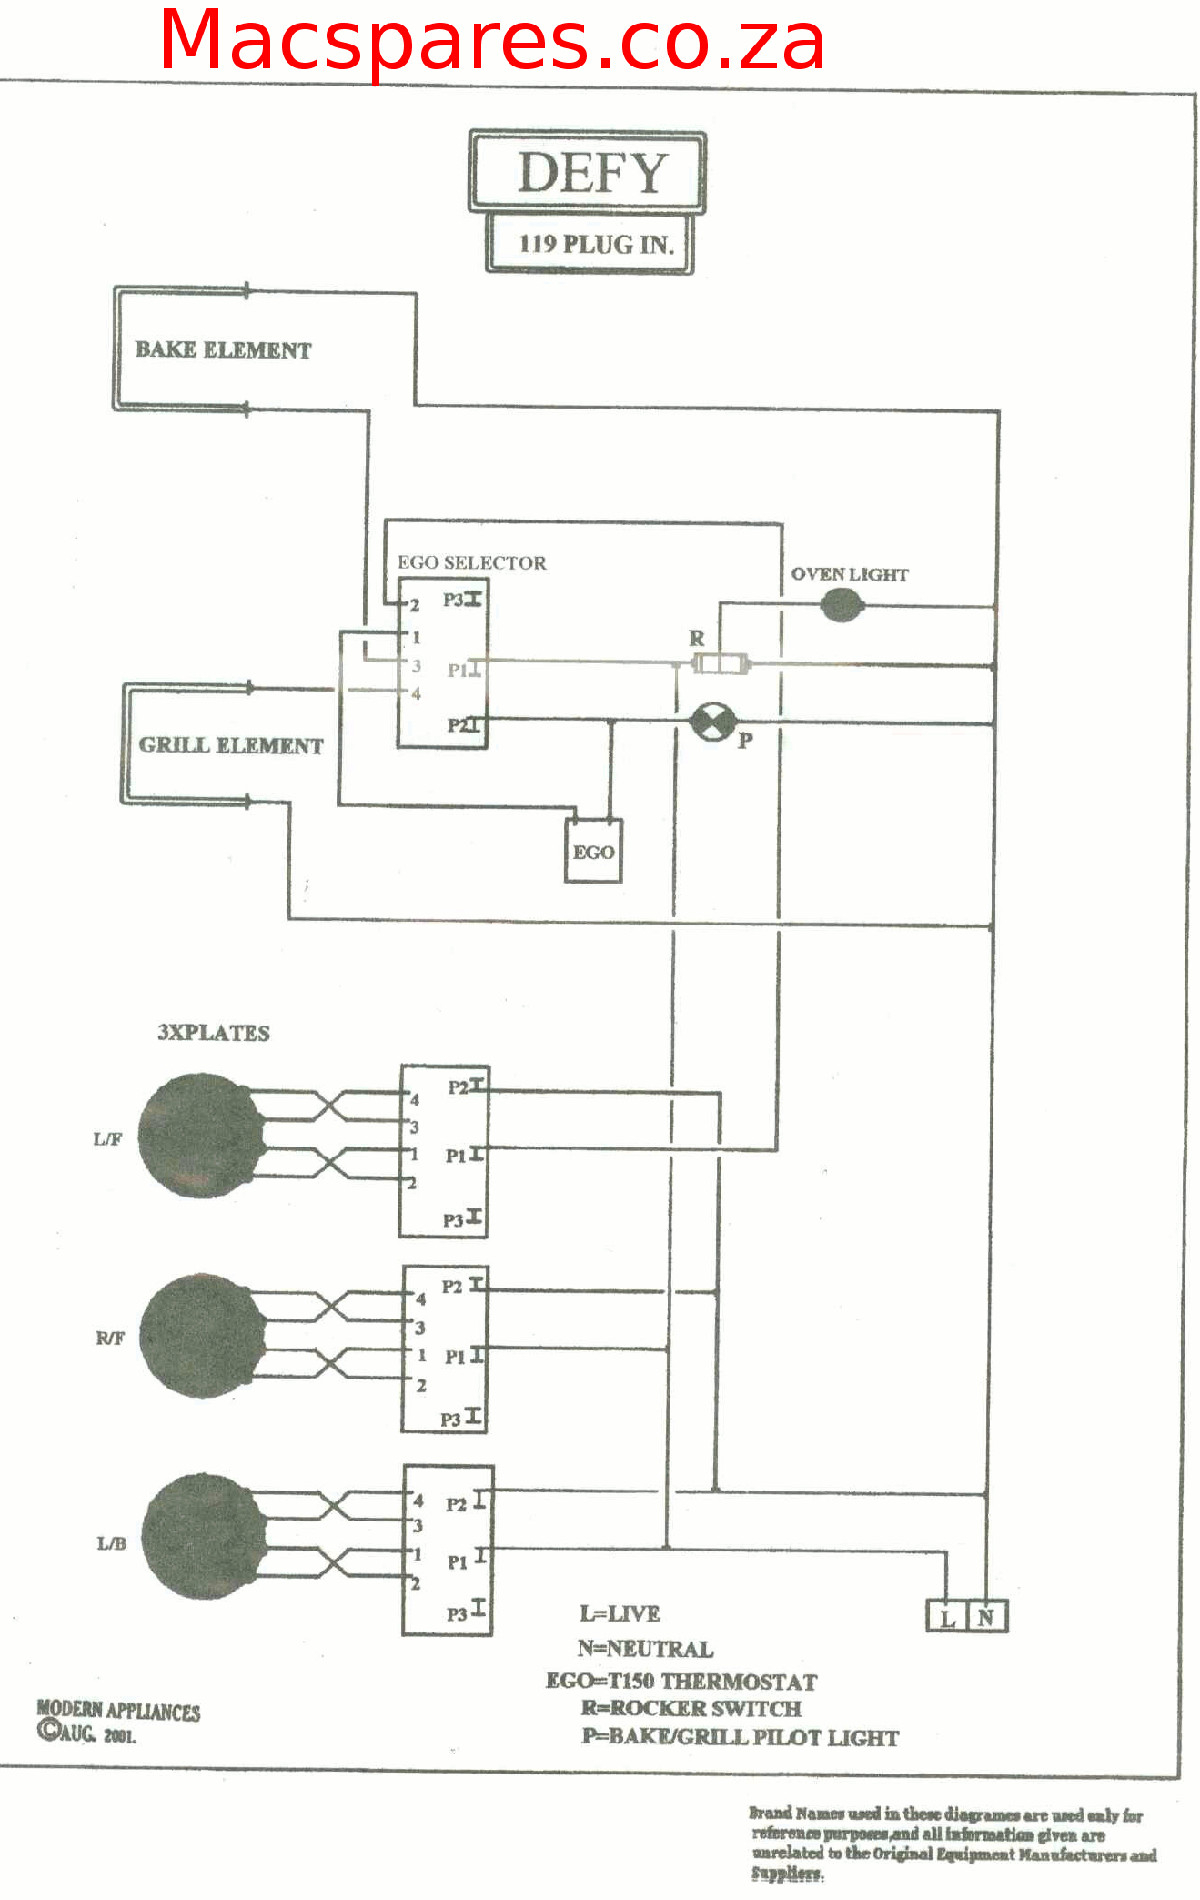 Peachy Roper Electric Stove Wiring Diagram Wiring Library Wiring Cloud Timewinrebemohammedshrineorg